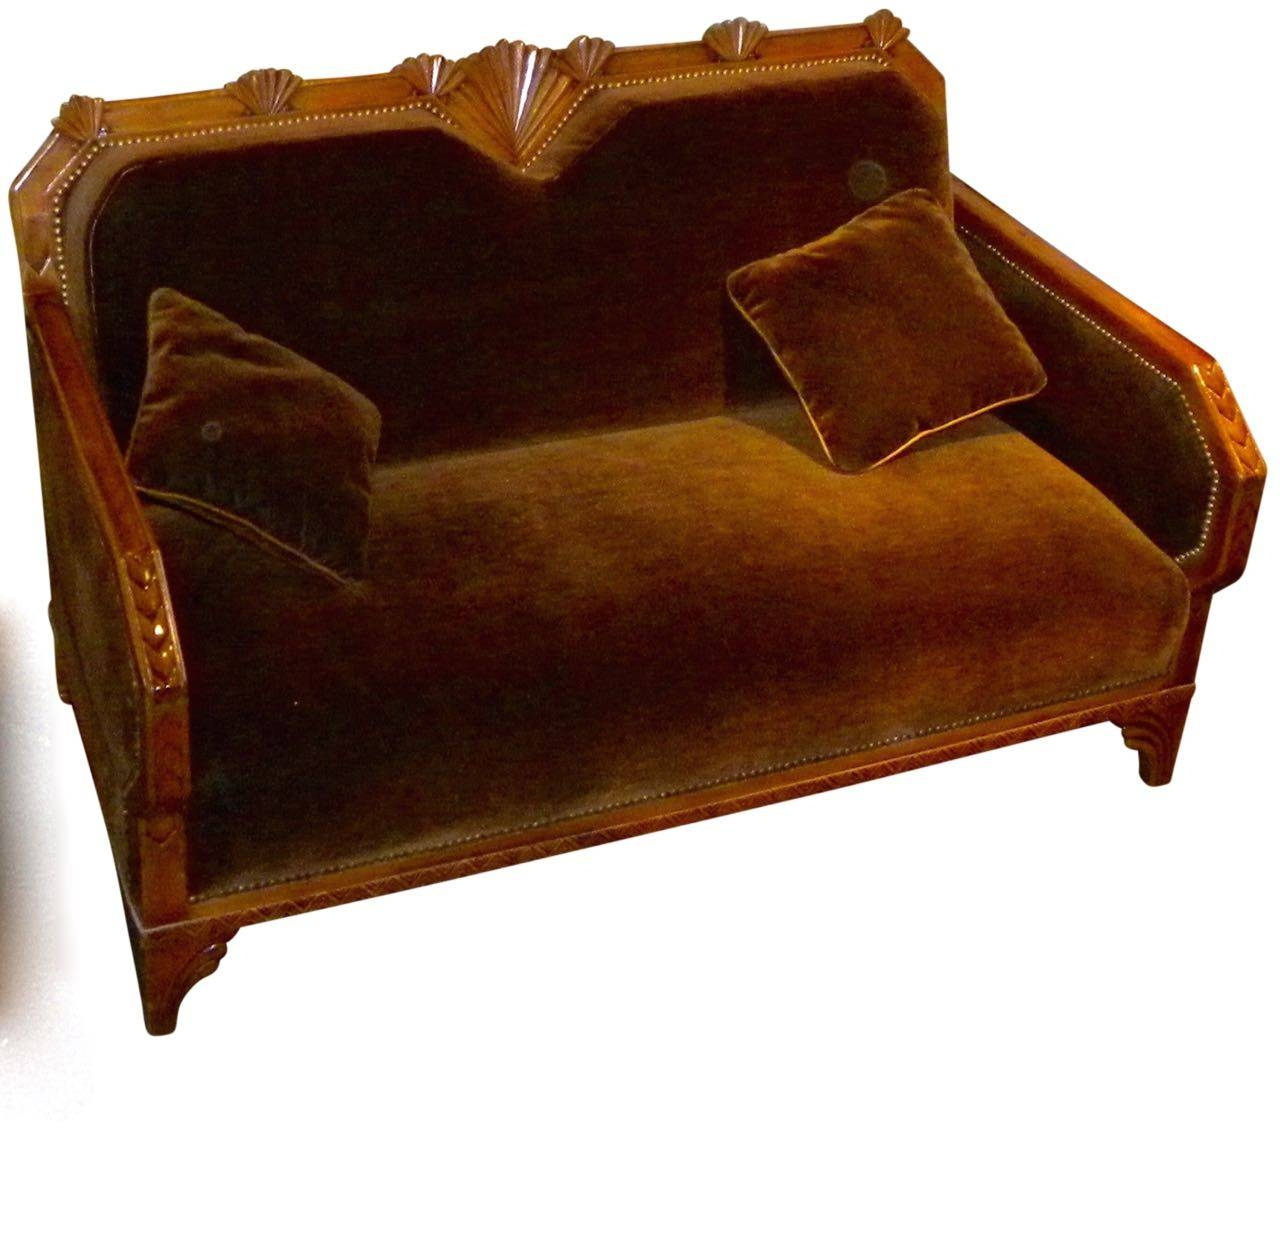 Art Deco Furniture For Sale | Seating Items | Art Deco Collection with regard to Art Deco Sofa and Chairs (Image 3 of 15)